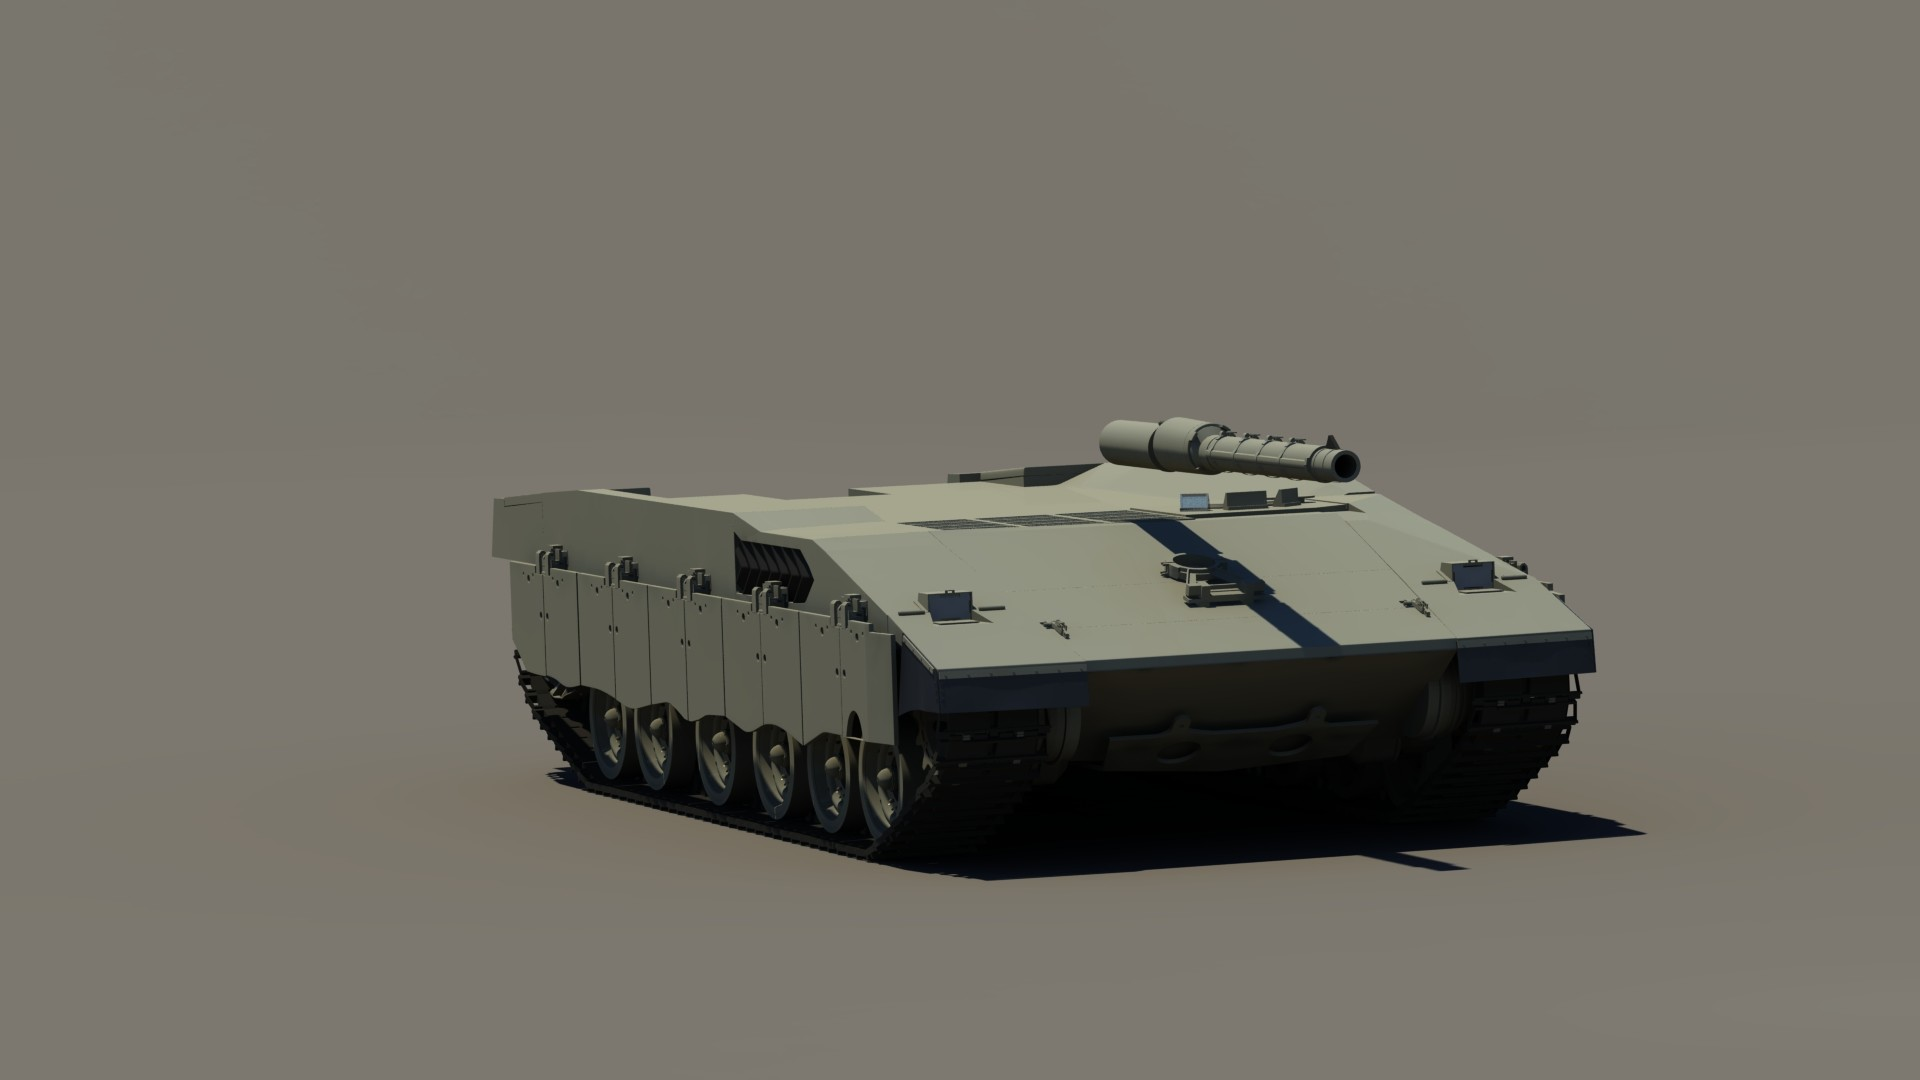 Week 3 WIP render. Added detail to the hull. Added barrel with thermal covers.